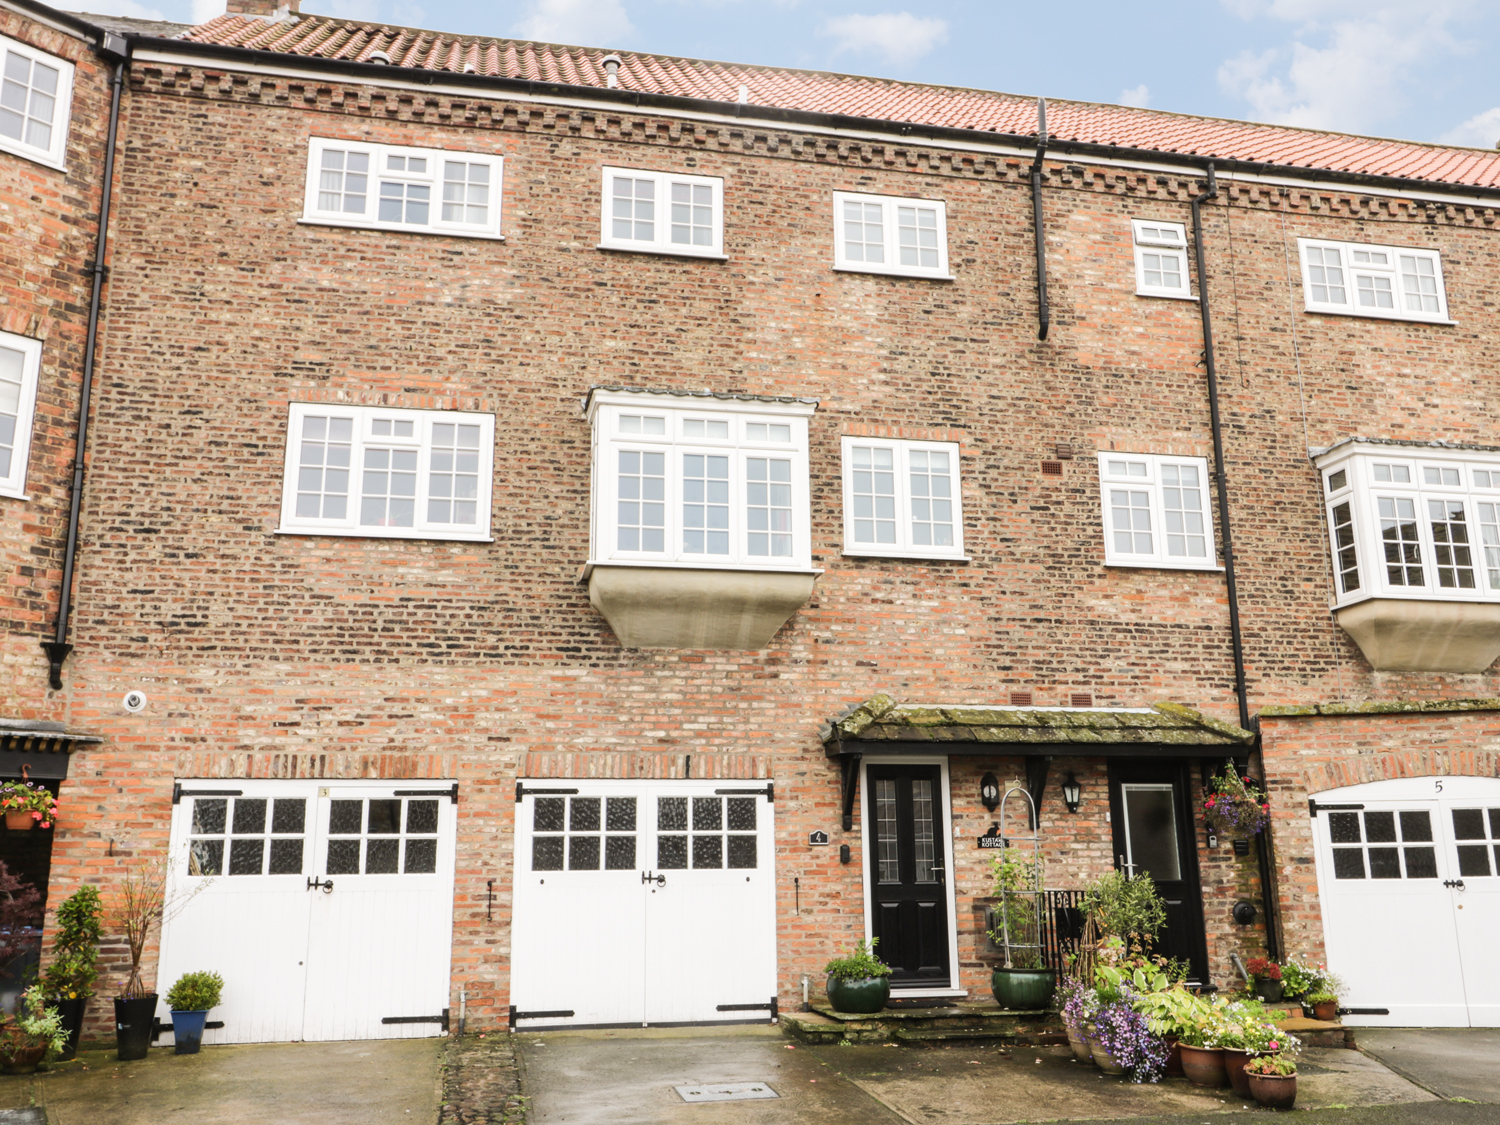 4 bedroom Cottage for rent in York